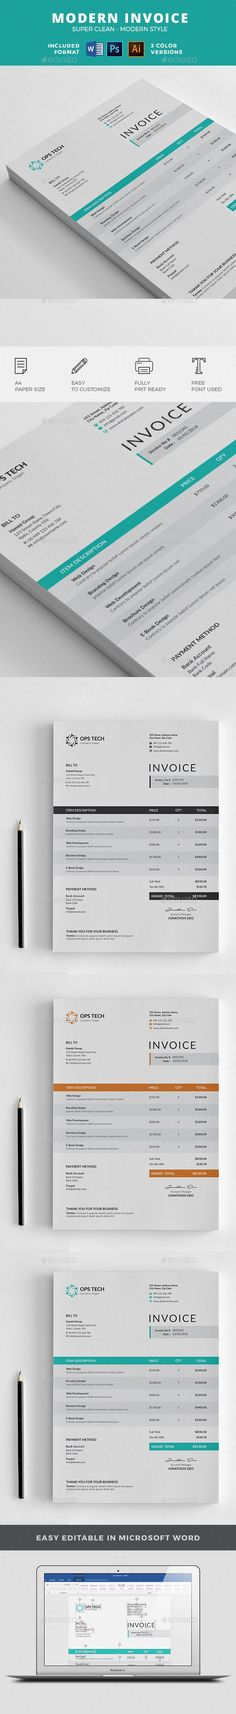 Invoice Template, Business proposal and Corporate identity - use of an invoice